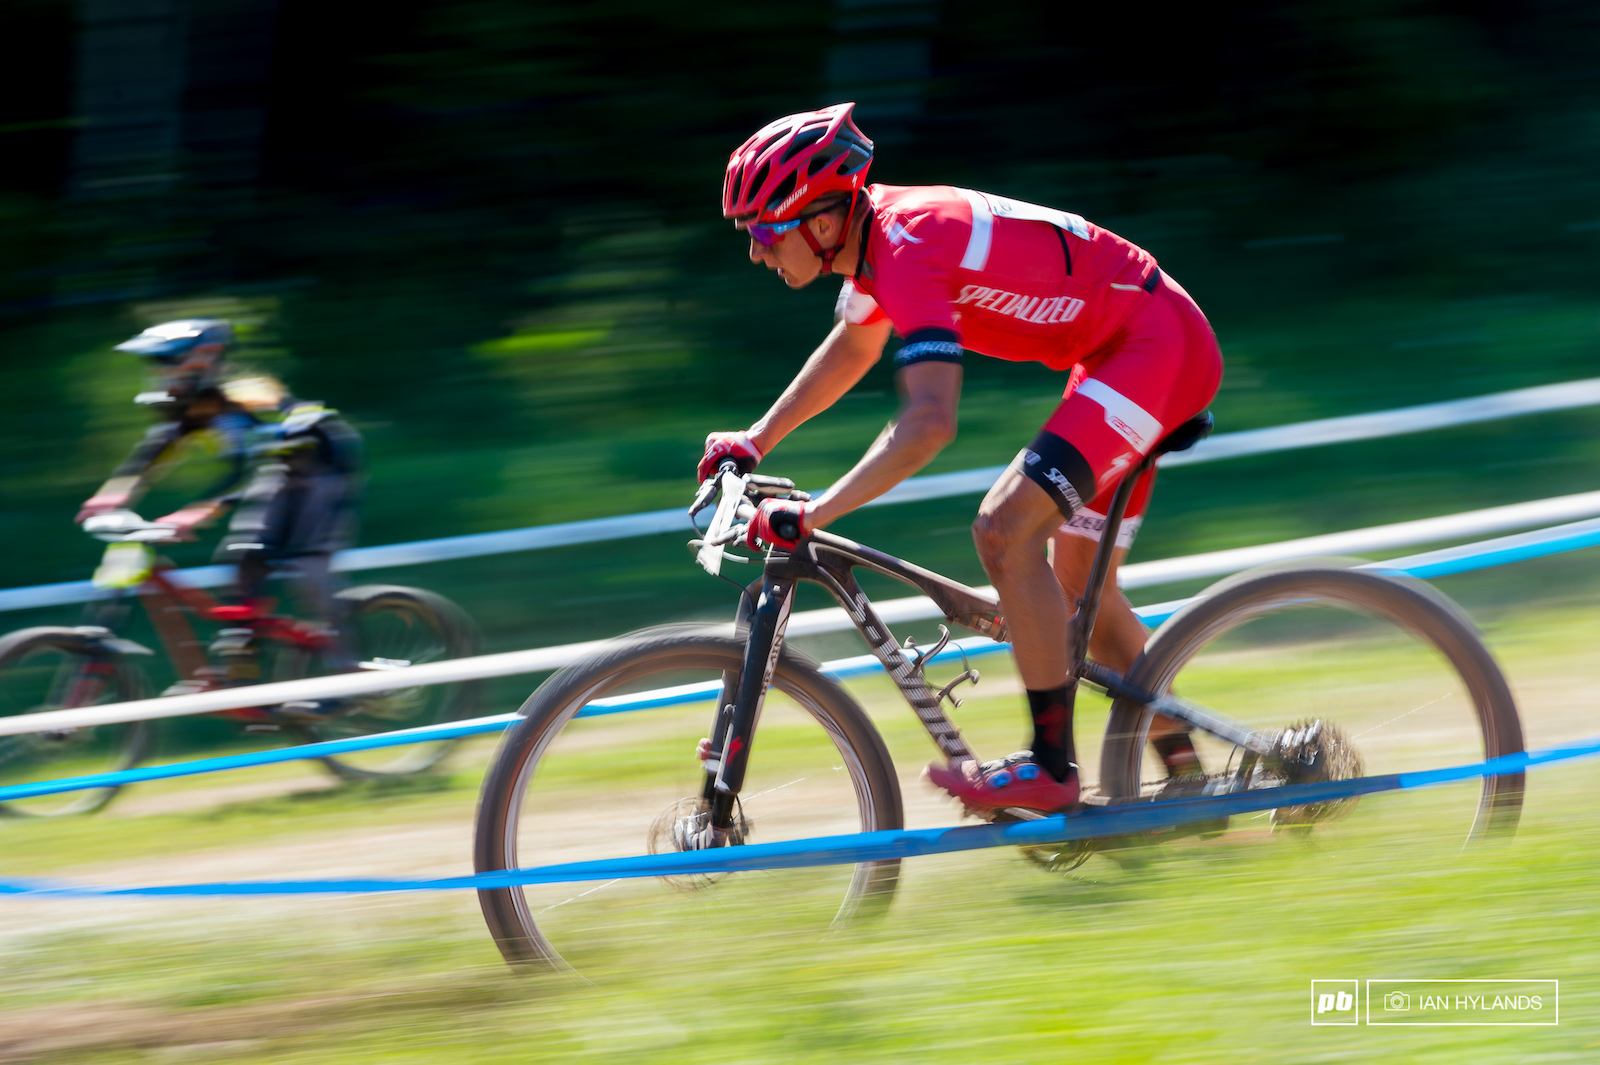 Howie Grotts was the top U23 American in 7th spot here he appears to chase down a miniature DH rider.